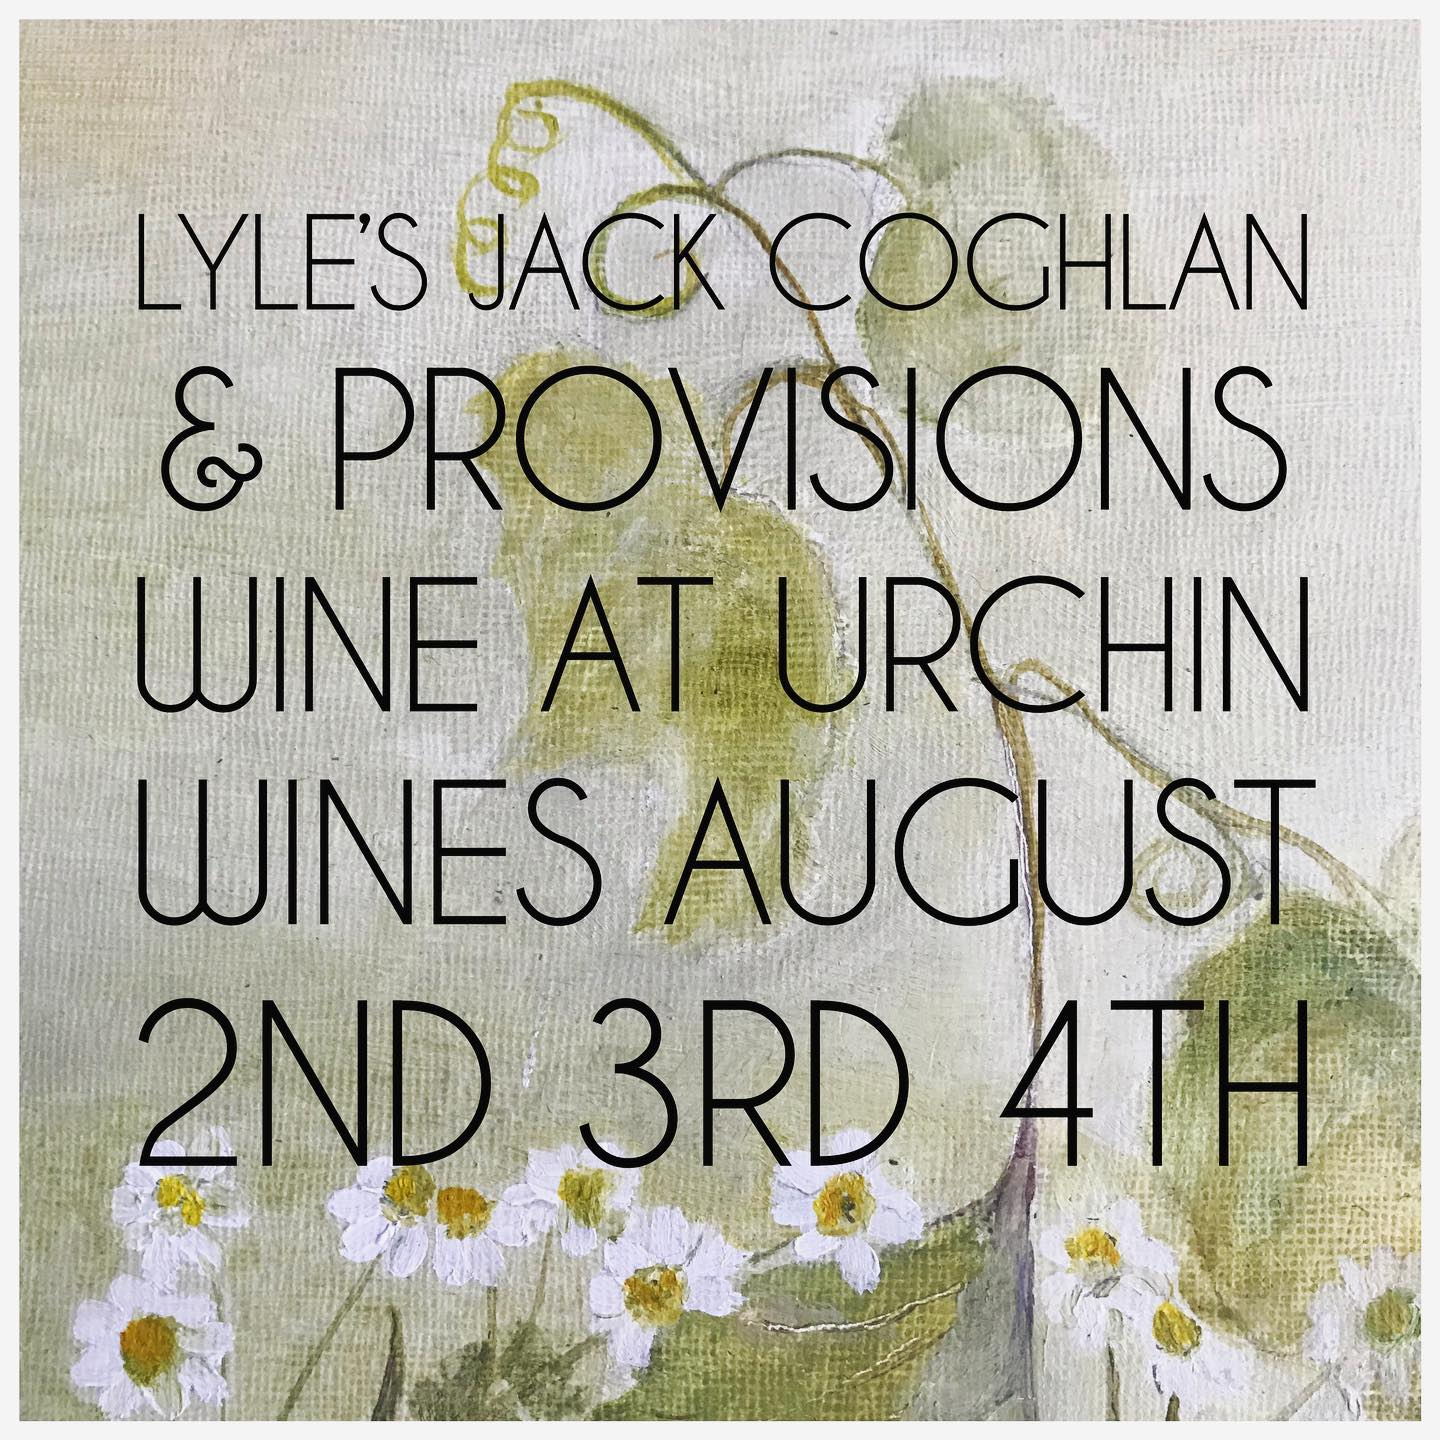 LYLE'S JACK COGHLAN & PROVISIONS WINE - 2nd 3rd & 4th AUGUST 2019Chef Jack Coghlan from Lyle's & Hugo from Provisions are coming to Urchin Wines to prepare a veritable feast of delicious wine and food for three days in a row.This is going to be something you definitely don't want to miss….Friday 6-9Saturday 6-9Sunday 1-5To book email info@urchinwines.com.Menu along these lines….-Chilled fennel soup-Crudités and provisions cheese sauce-Gem lettuce with anchovies and cheese from provisions-Terrine or parfait, mustard salad, runner beans? and toast-Jersey royals, crisps and smoked cods roe-Glazed duck leg and redcurrant-Braised lamb with borlotti, peas and green sauce-Stonefruit, Ivy House cream and sorrel-Fig leaf panna cotta, figs and honey